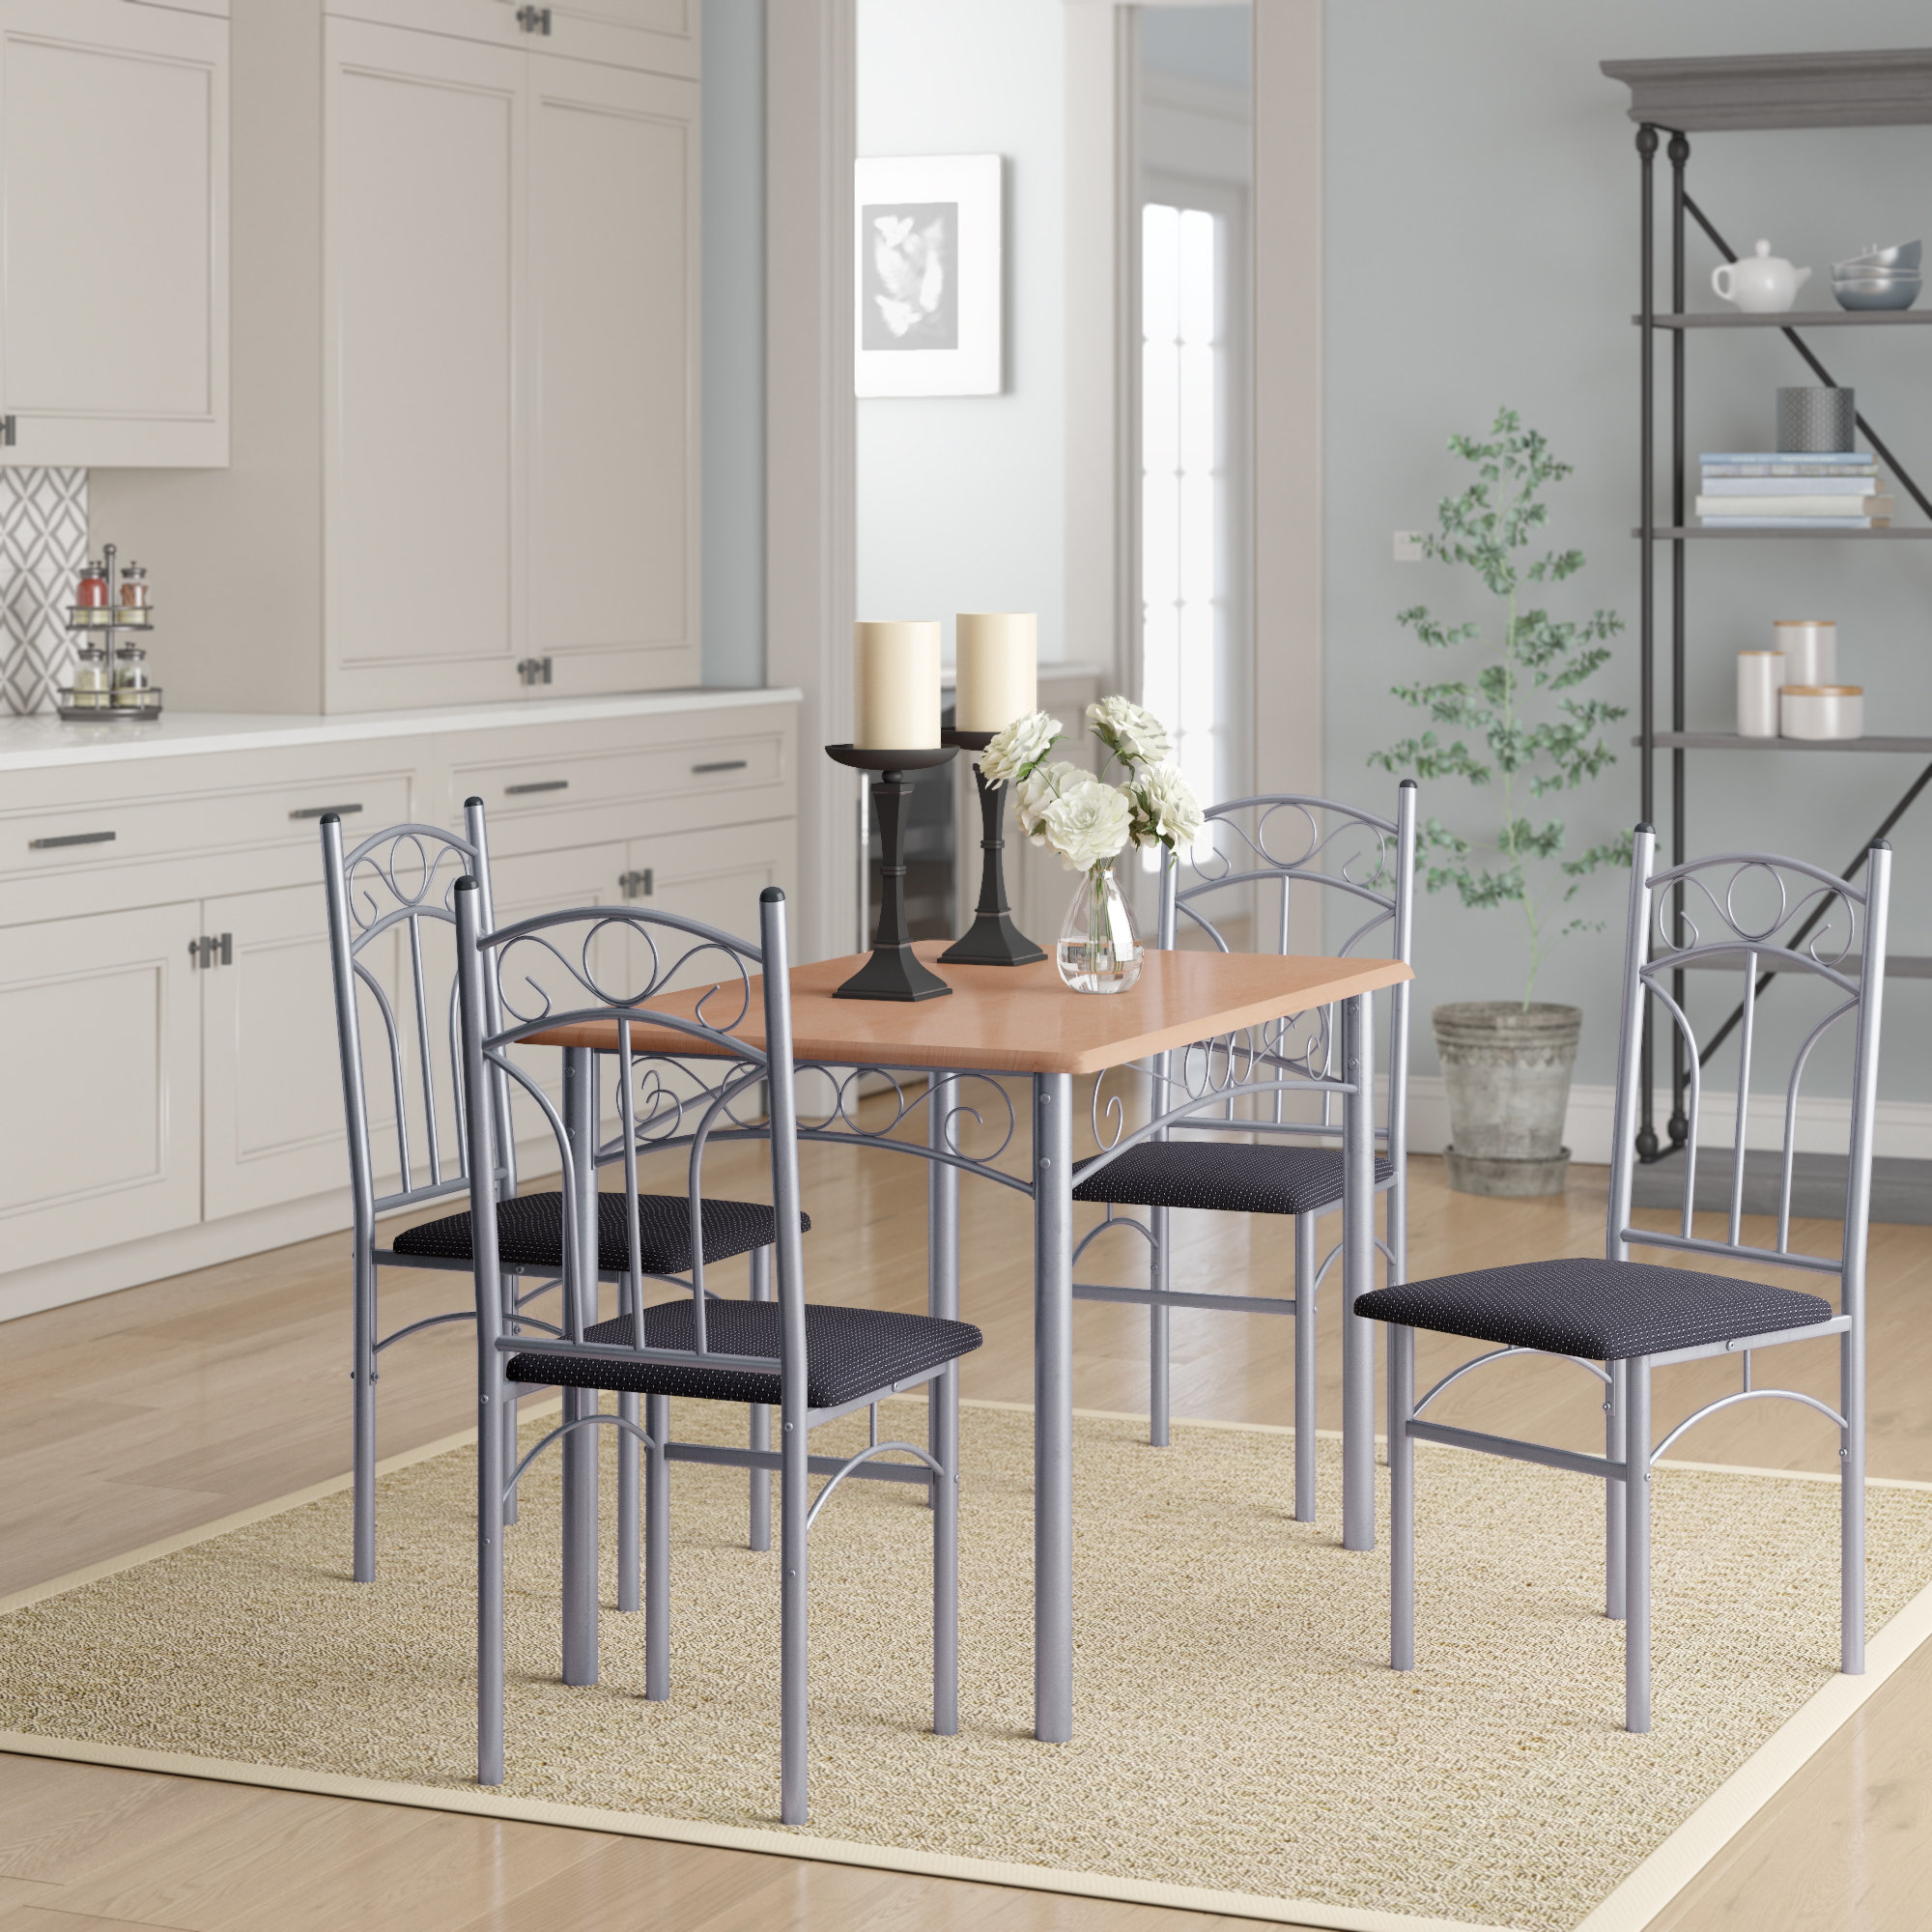 Details About Winston Porter Opalstone 5 Piece Dining Set Intended For Most Up To Date Tavarez 5 Piece Dining Sets (Image 8 of 20)